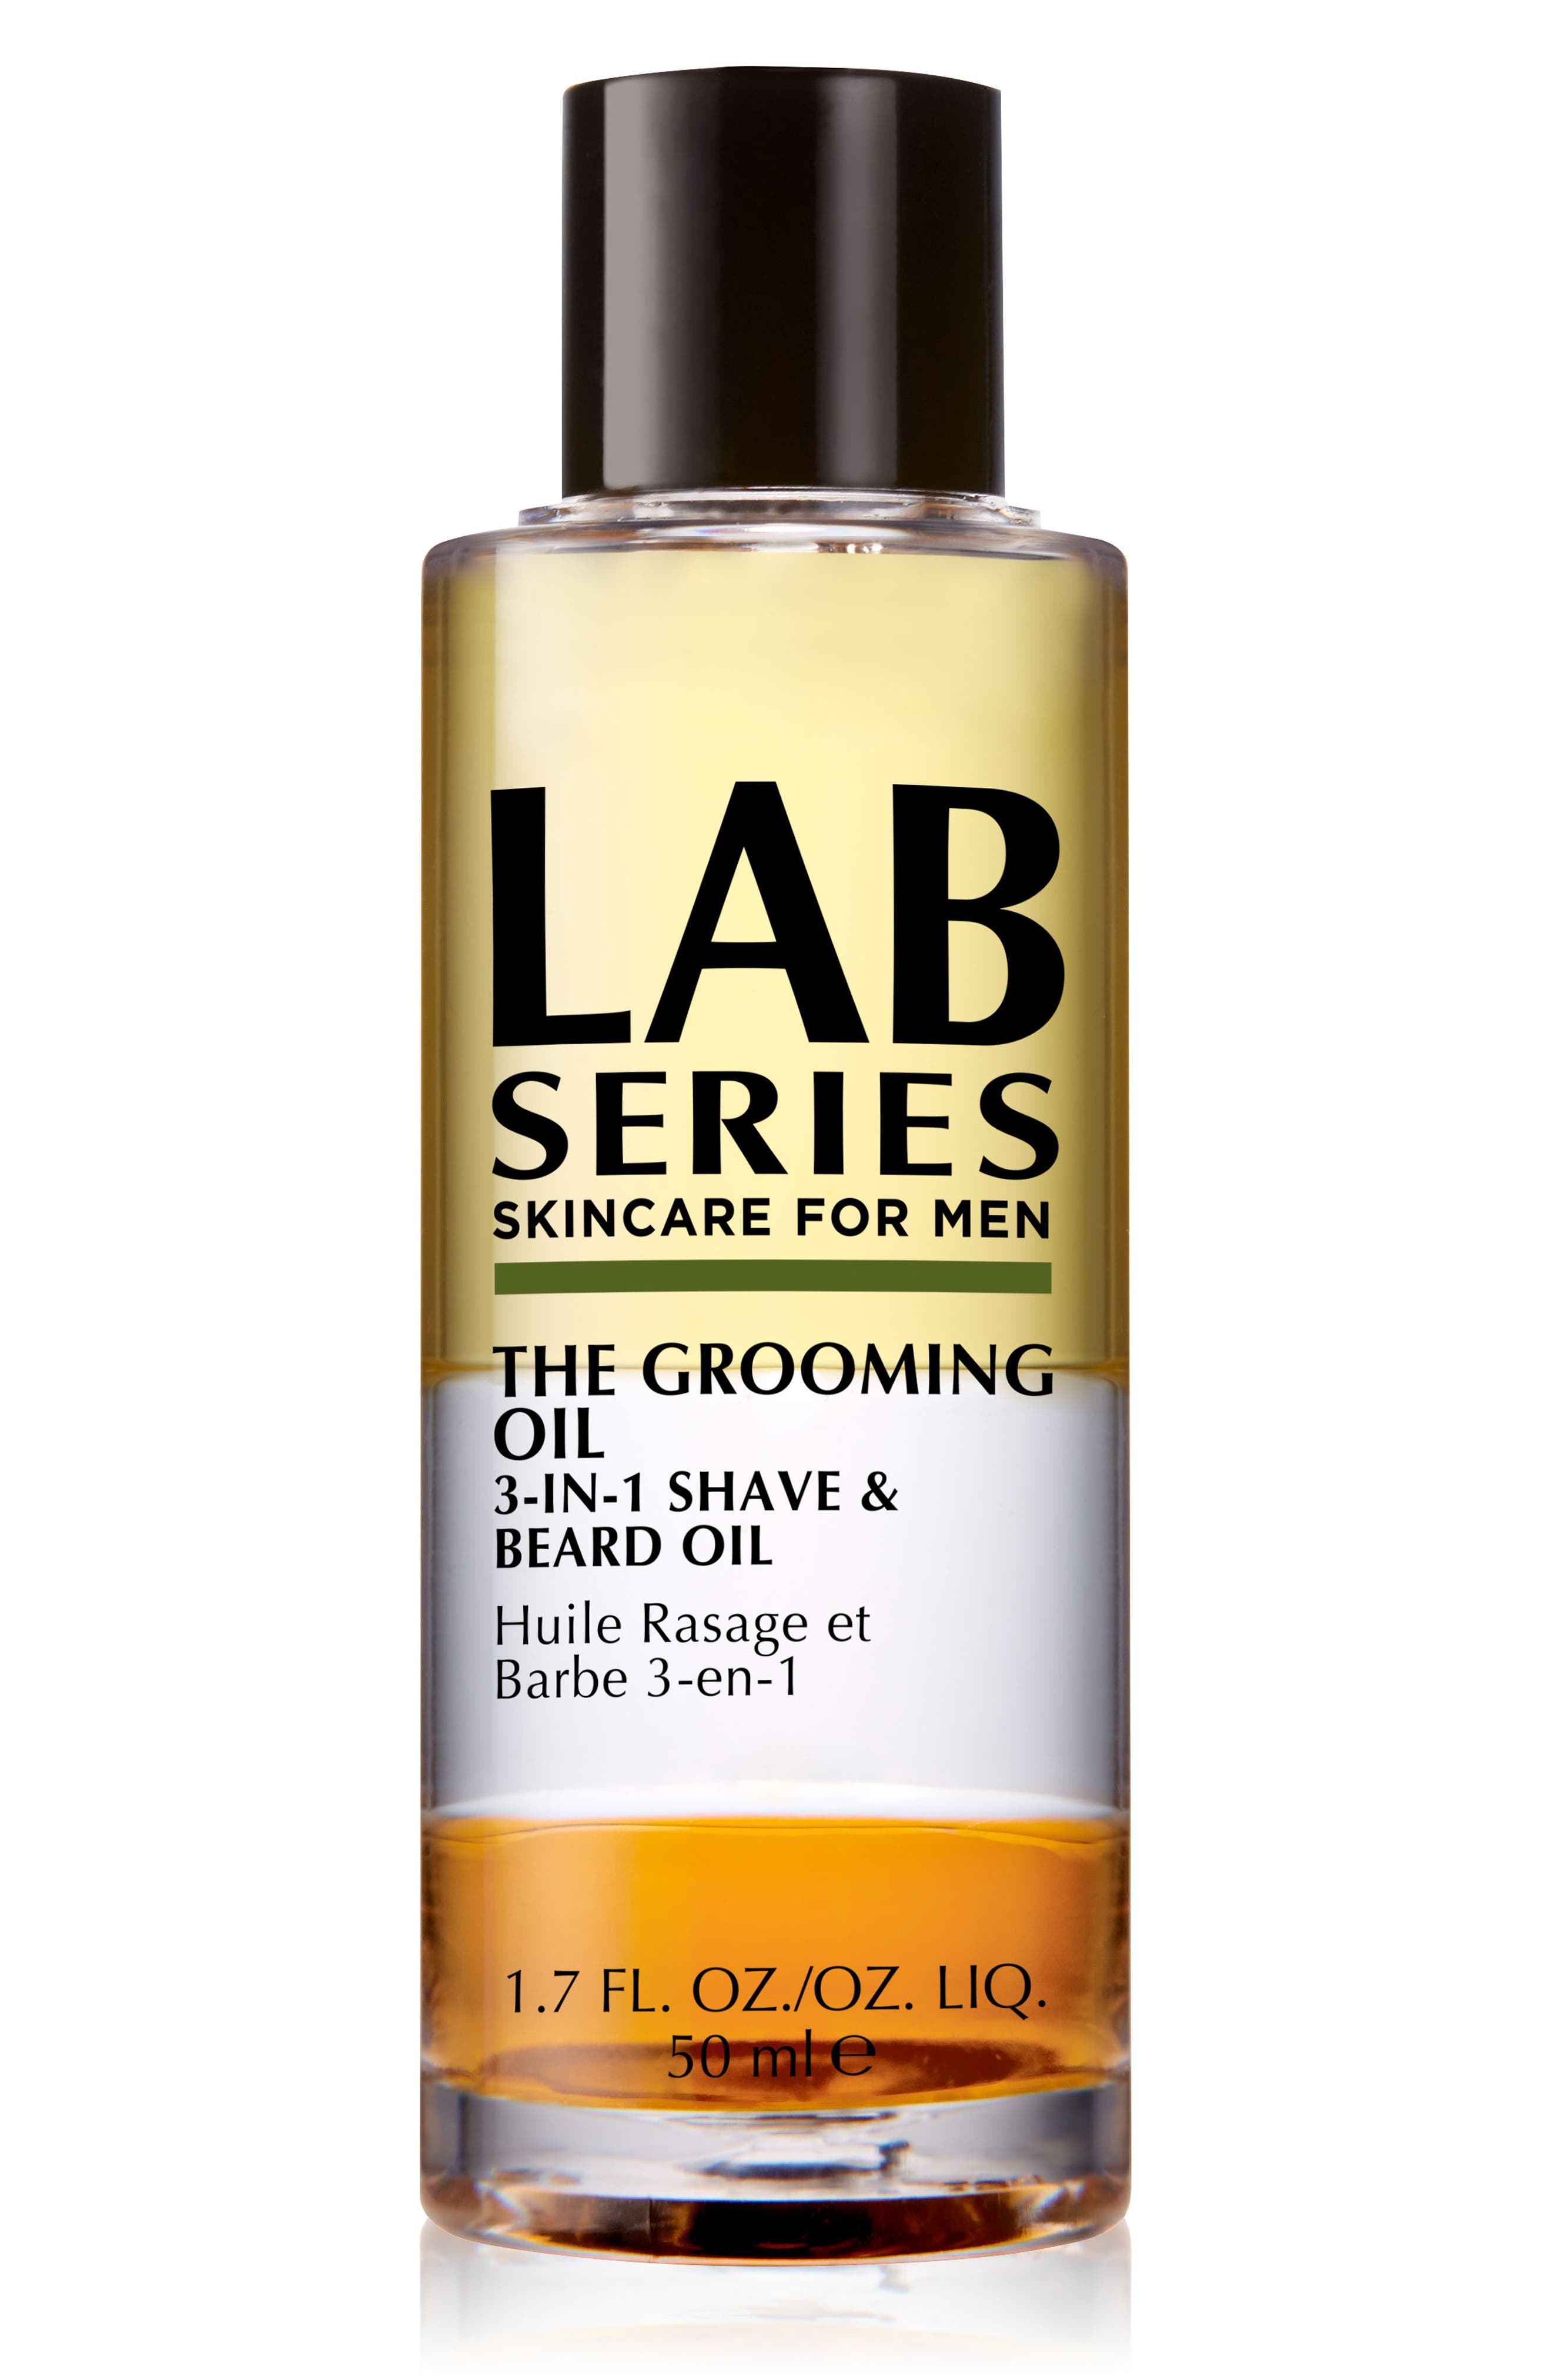 LAB SERIES SKINCARE FOR MEN The Grooming 3-in-1 Shave & Beard Oil, Main, color, NO COLOR